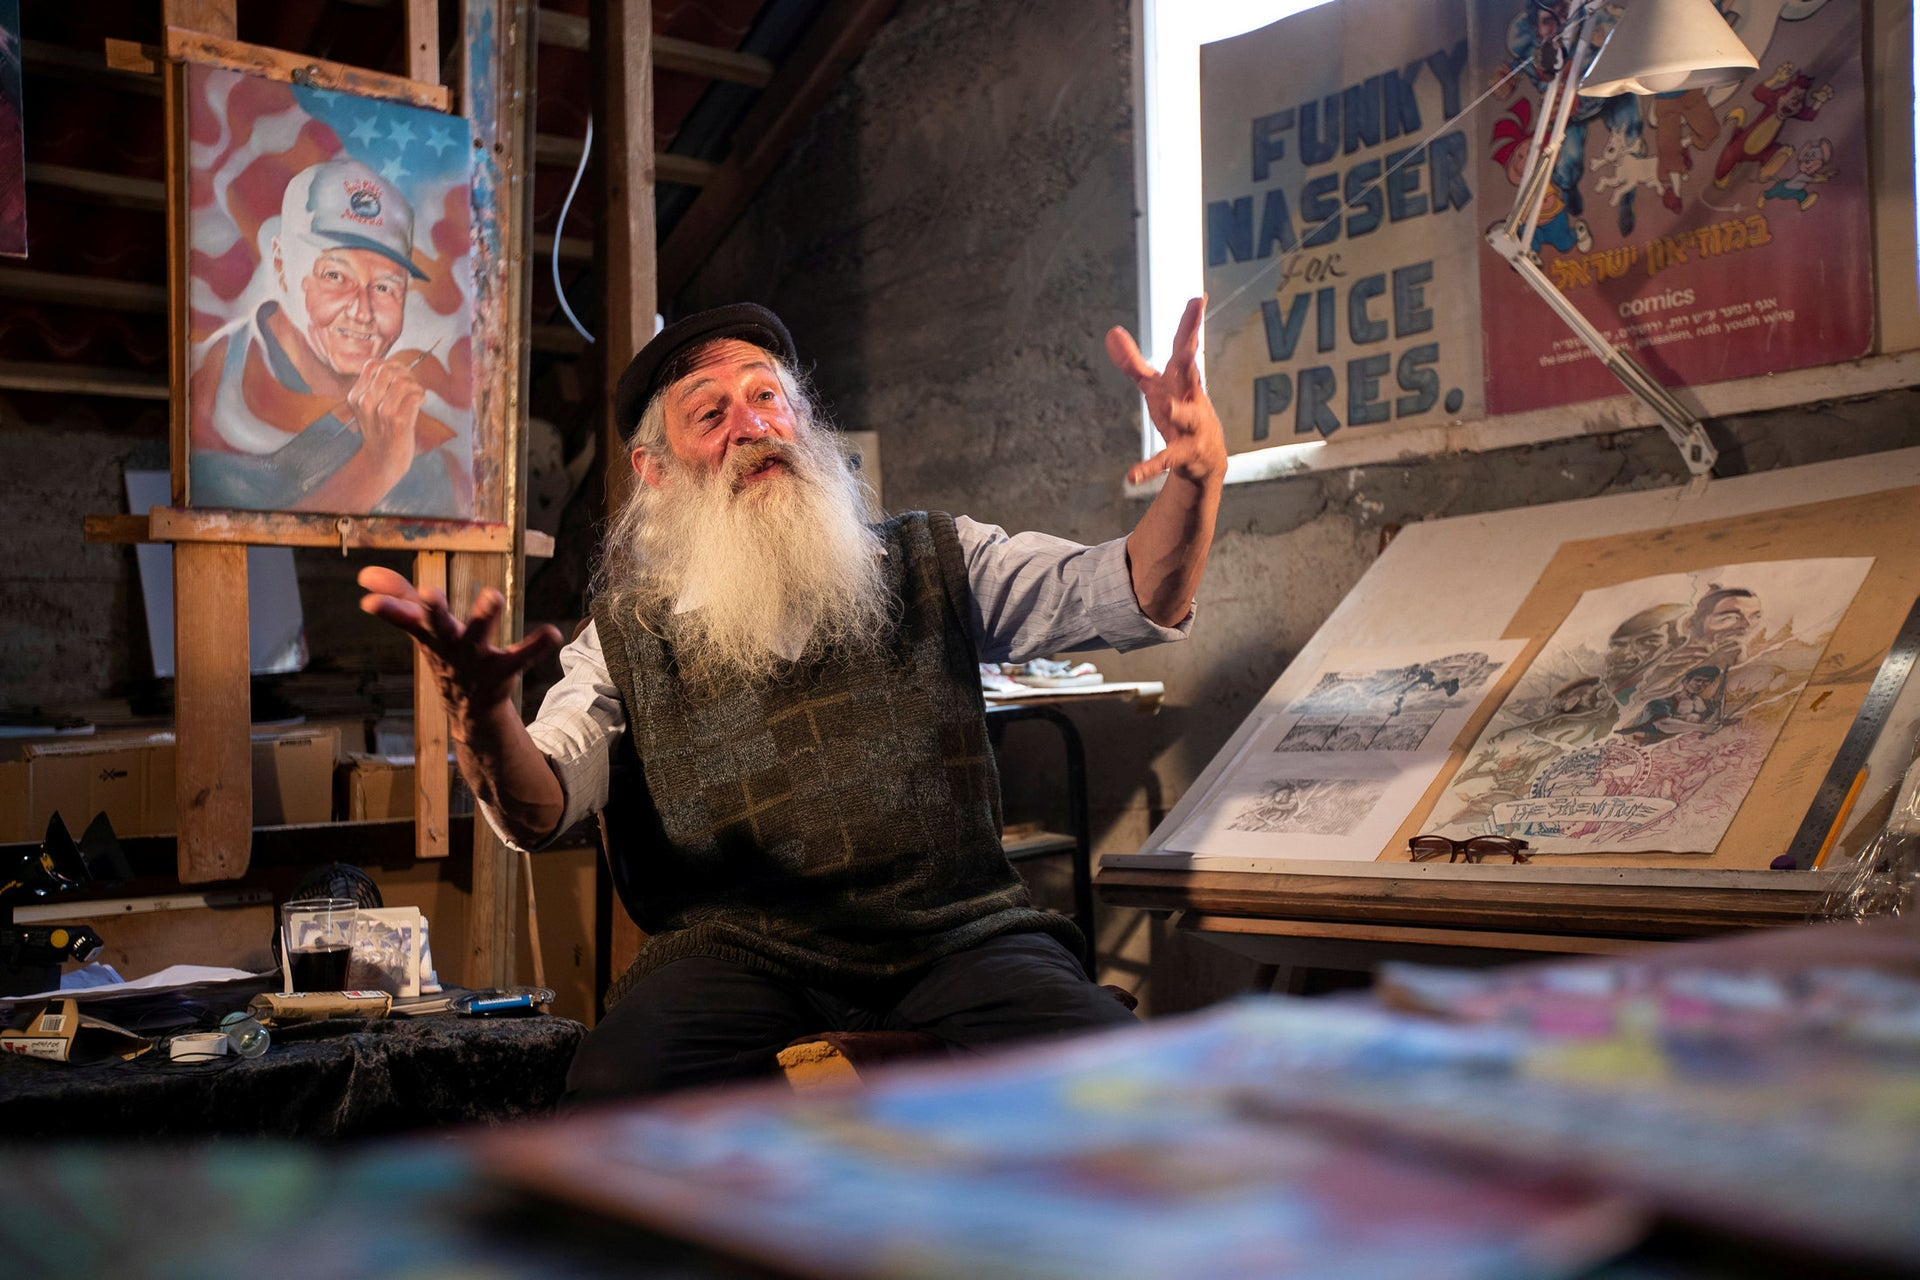 Michael Netzer, 63, an American comic artist formerly named Mike Nasser, in his attic studio at his home in the Israeli settlement of Ofra.